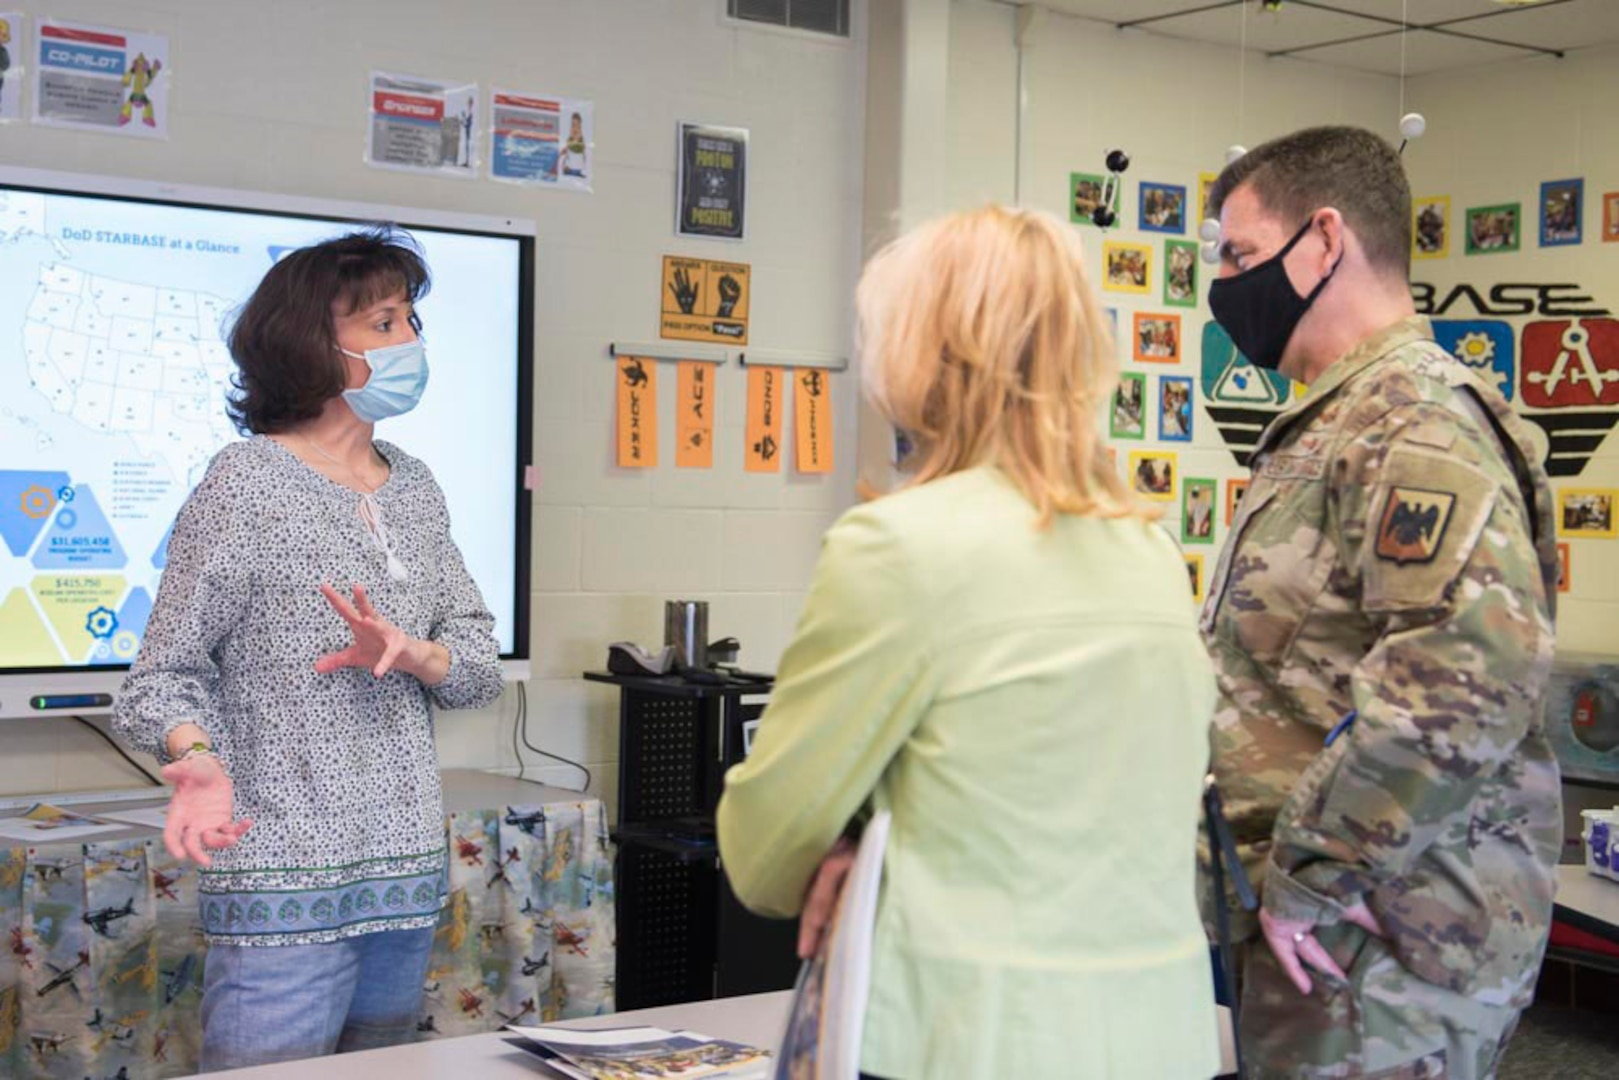 Sherra Triggs, left, director of STARBASE Martinsburg, speaks with U.S. Air Force Lt. Gen. Michael A. Loh, director, Air National Guard, and his wife Diane Loh, about teaching STARBASE curriculum through the COVID-19 pandemic, during their visit to the 167th Airlift Wing, West Virginia National Guard, at Shepherd Field Air National Guard Base in Martinsburg, West Virginia, March 9, 2021. During his visit, Loh received updates on the unit's current operations and response to the COVID-19 pandemic.